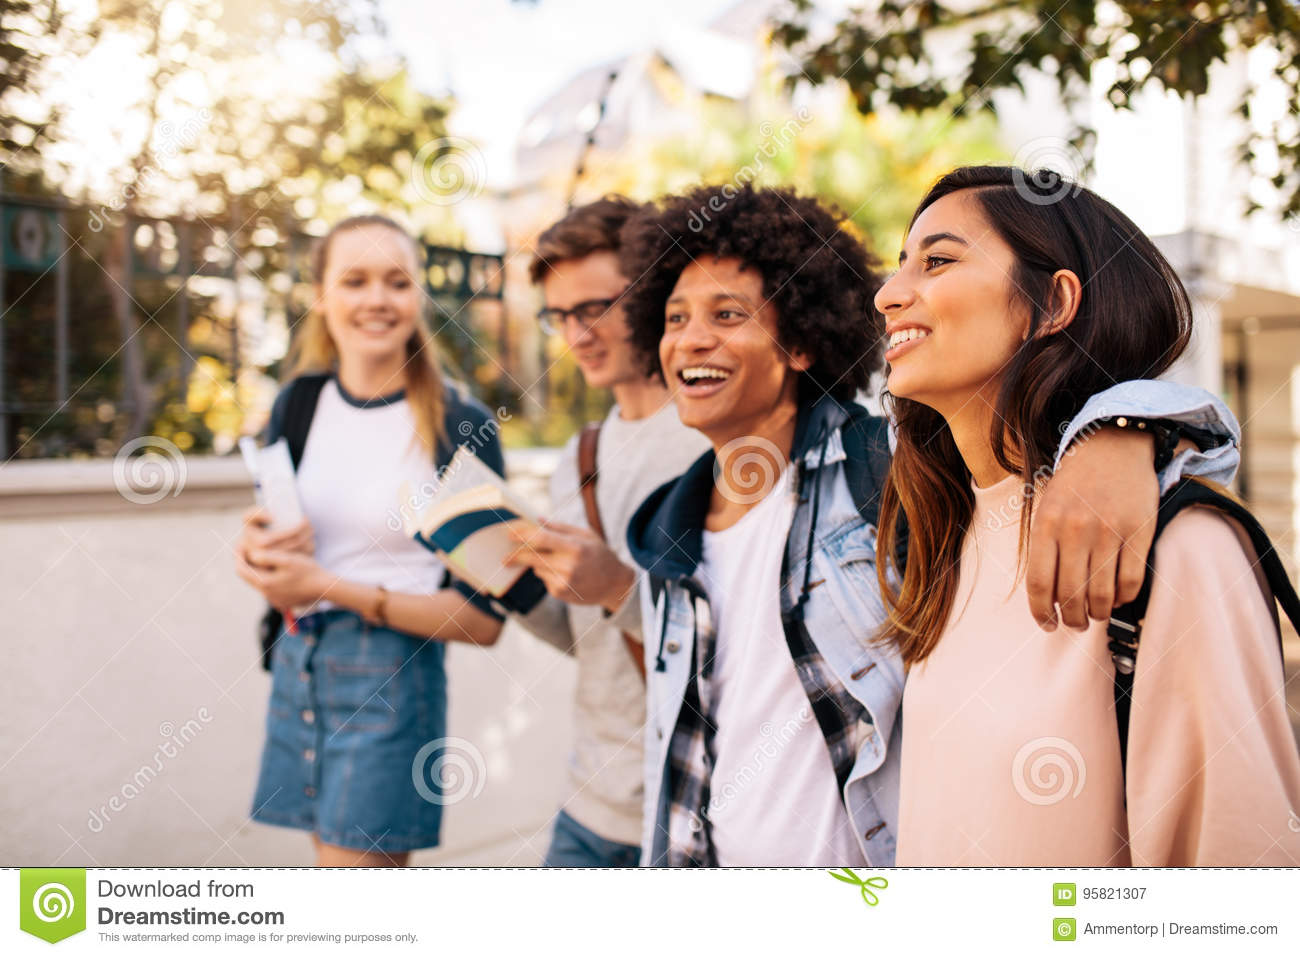 College students walking together outdoors